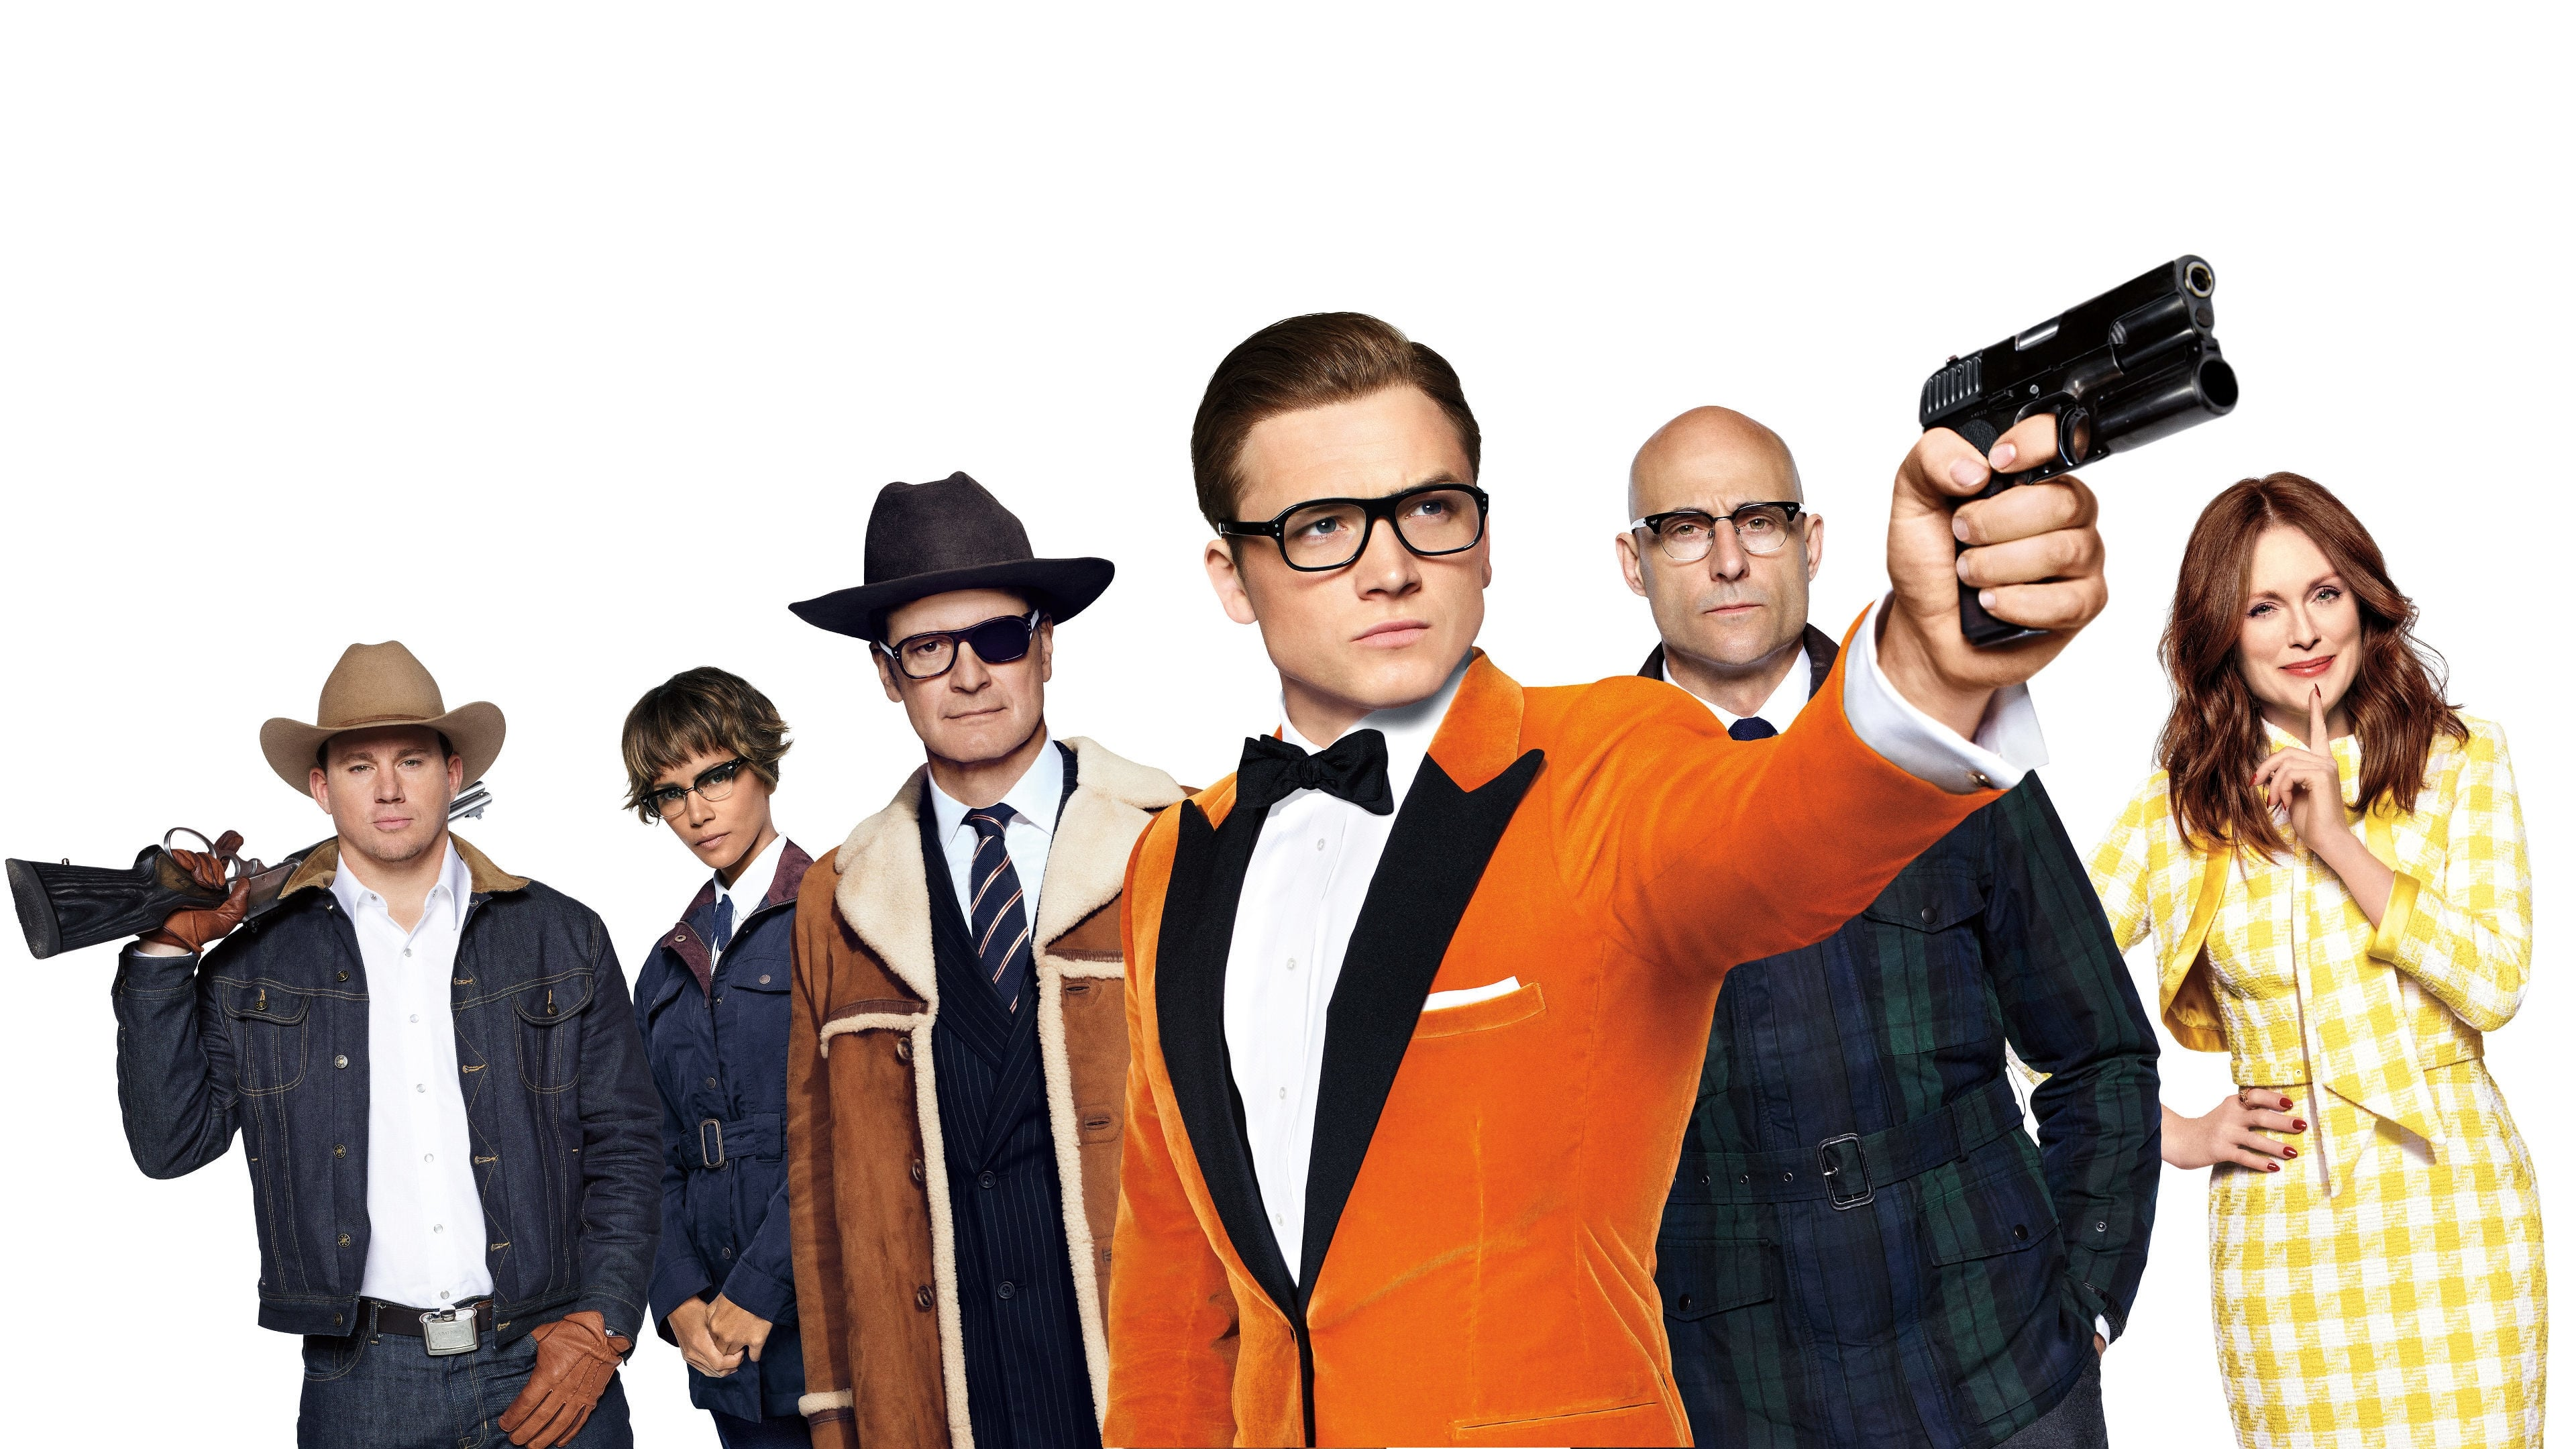 kingsman 2 streamkiste